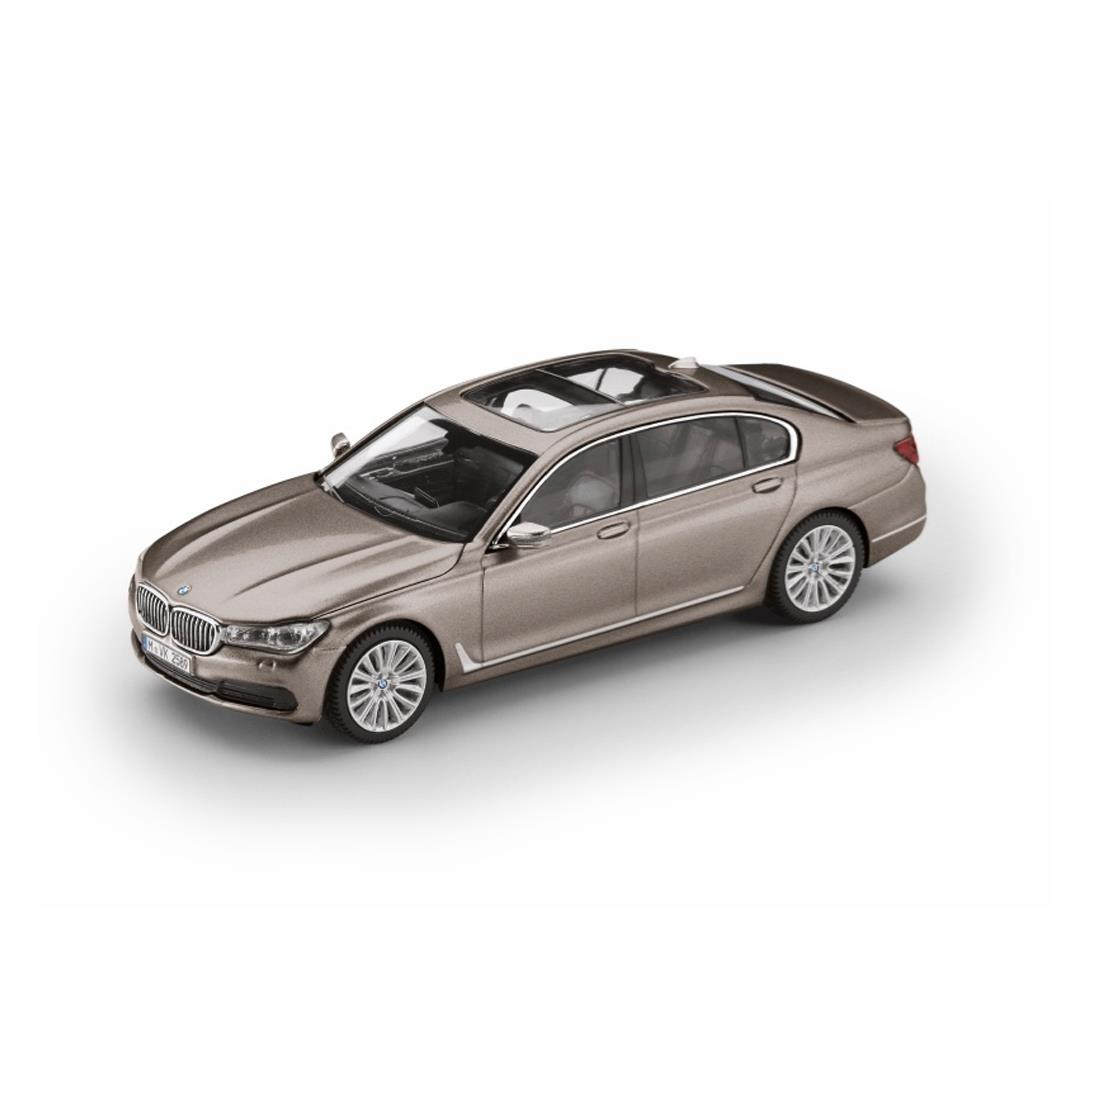 BMW 7 Series Miniature G12 Long